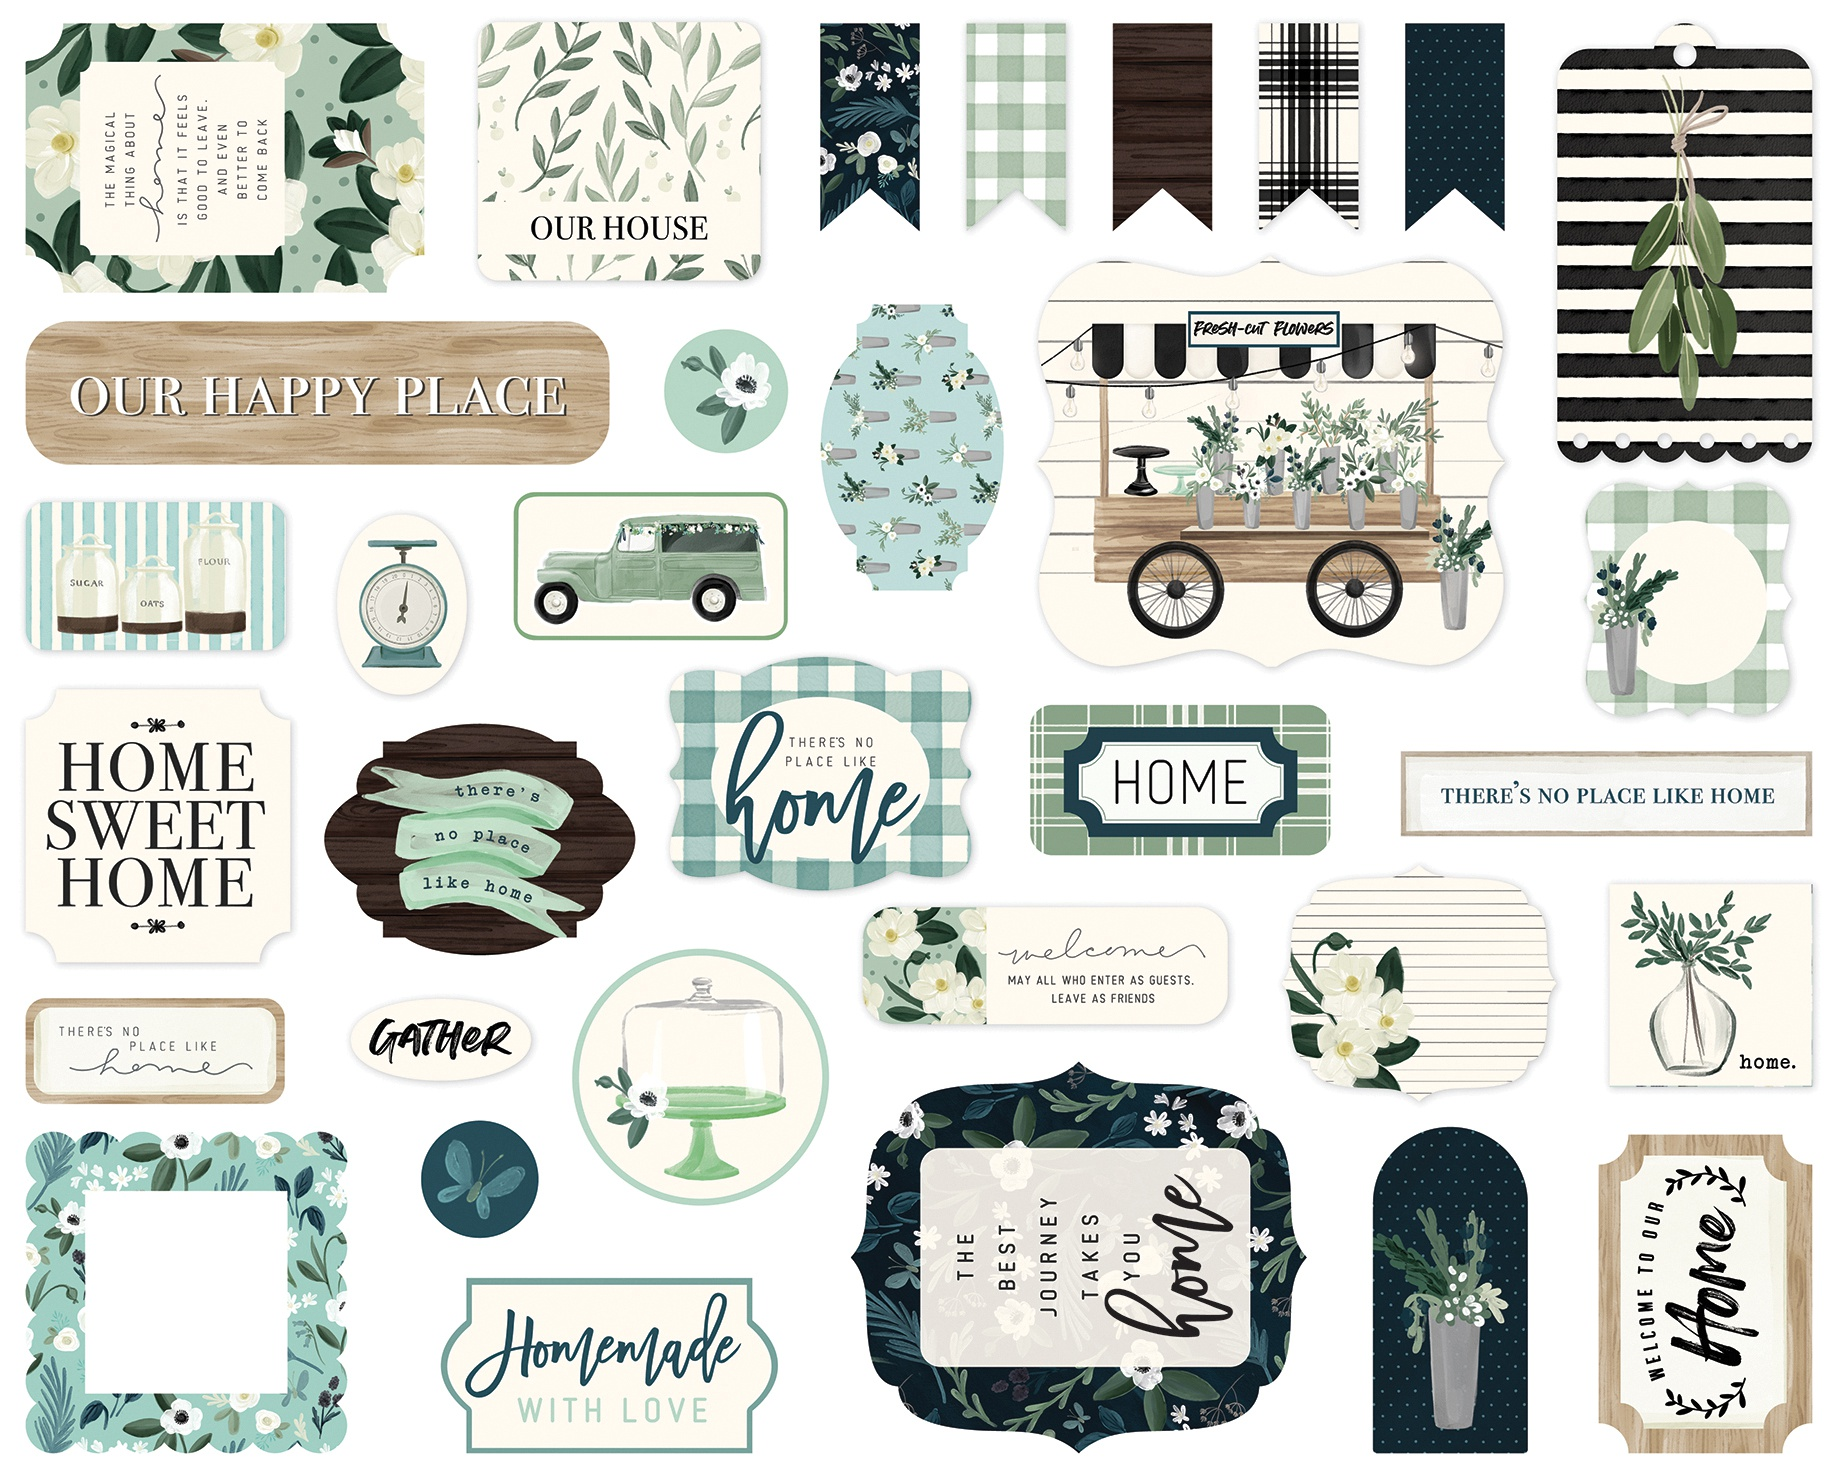 Carta Bella Cardstock Ephemera 33/Pkg-Icons, Home Again